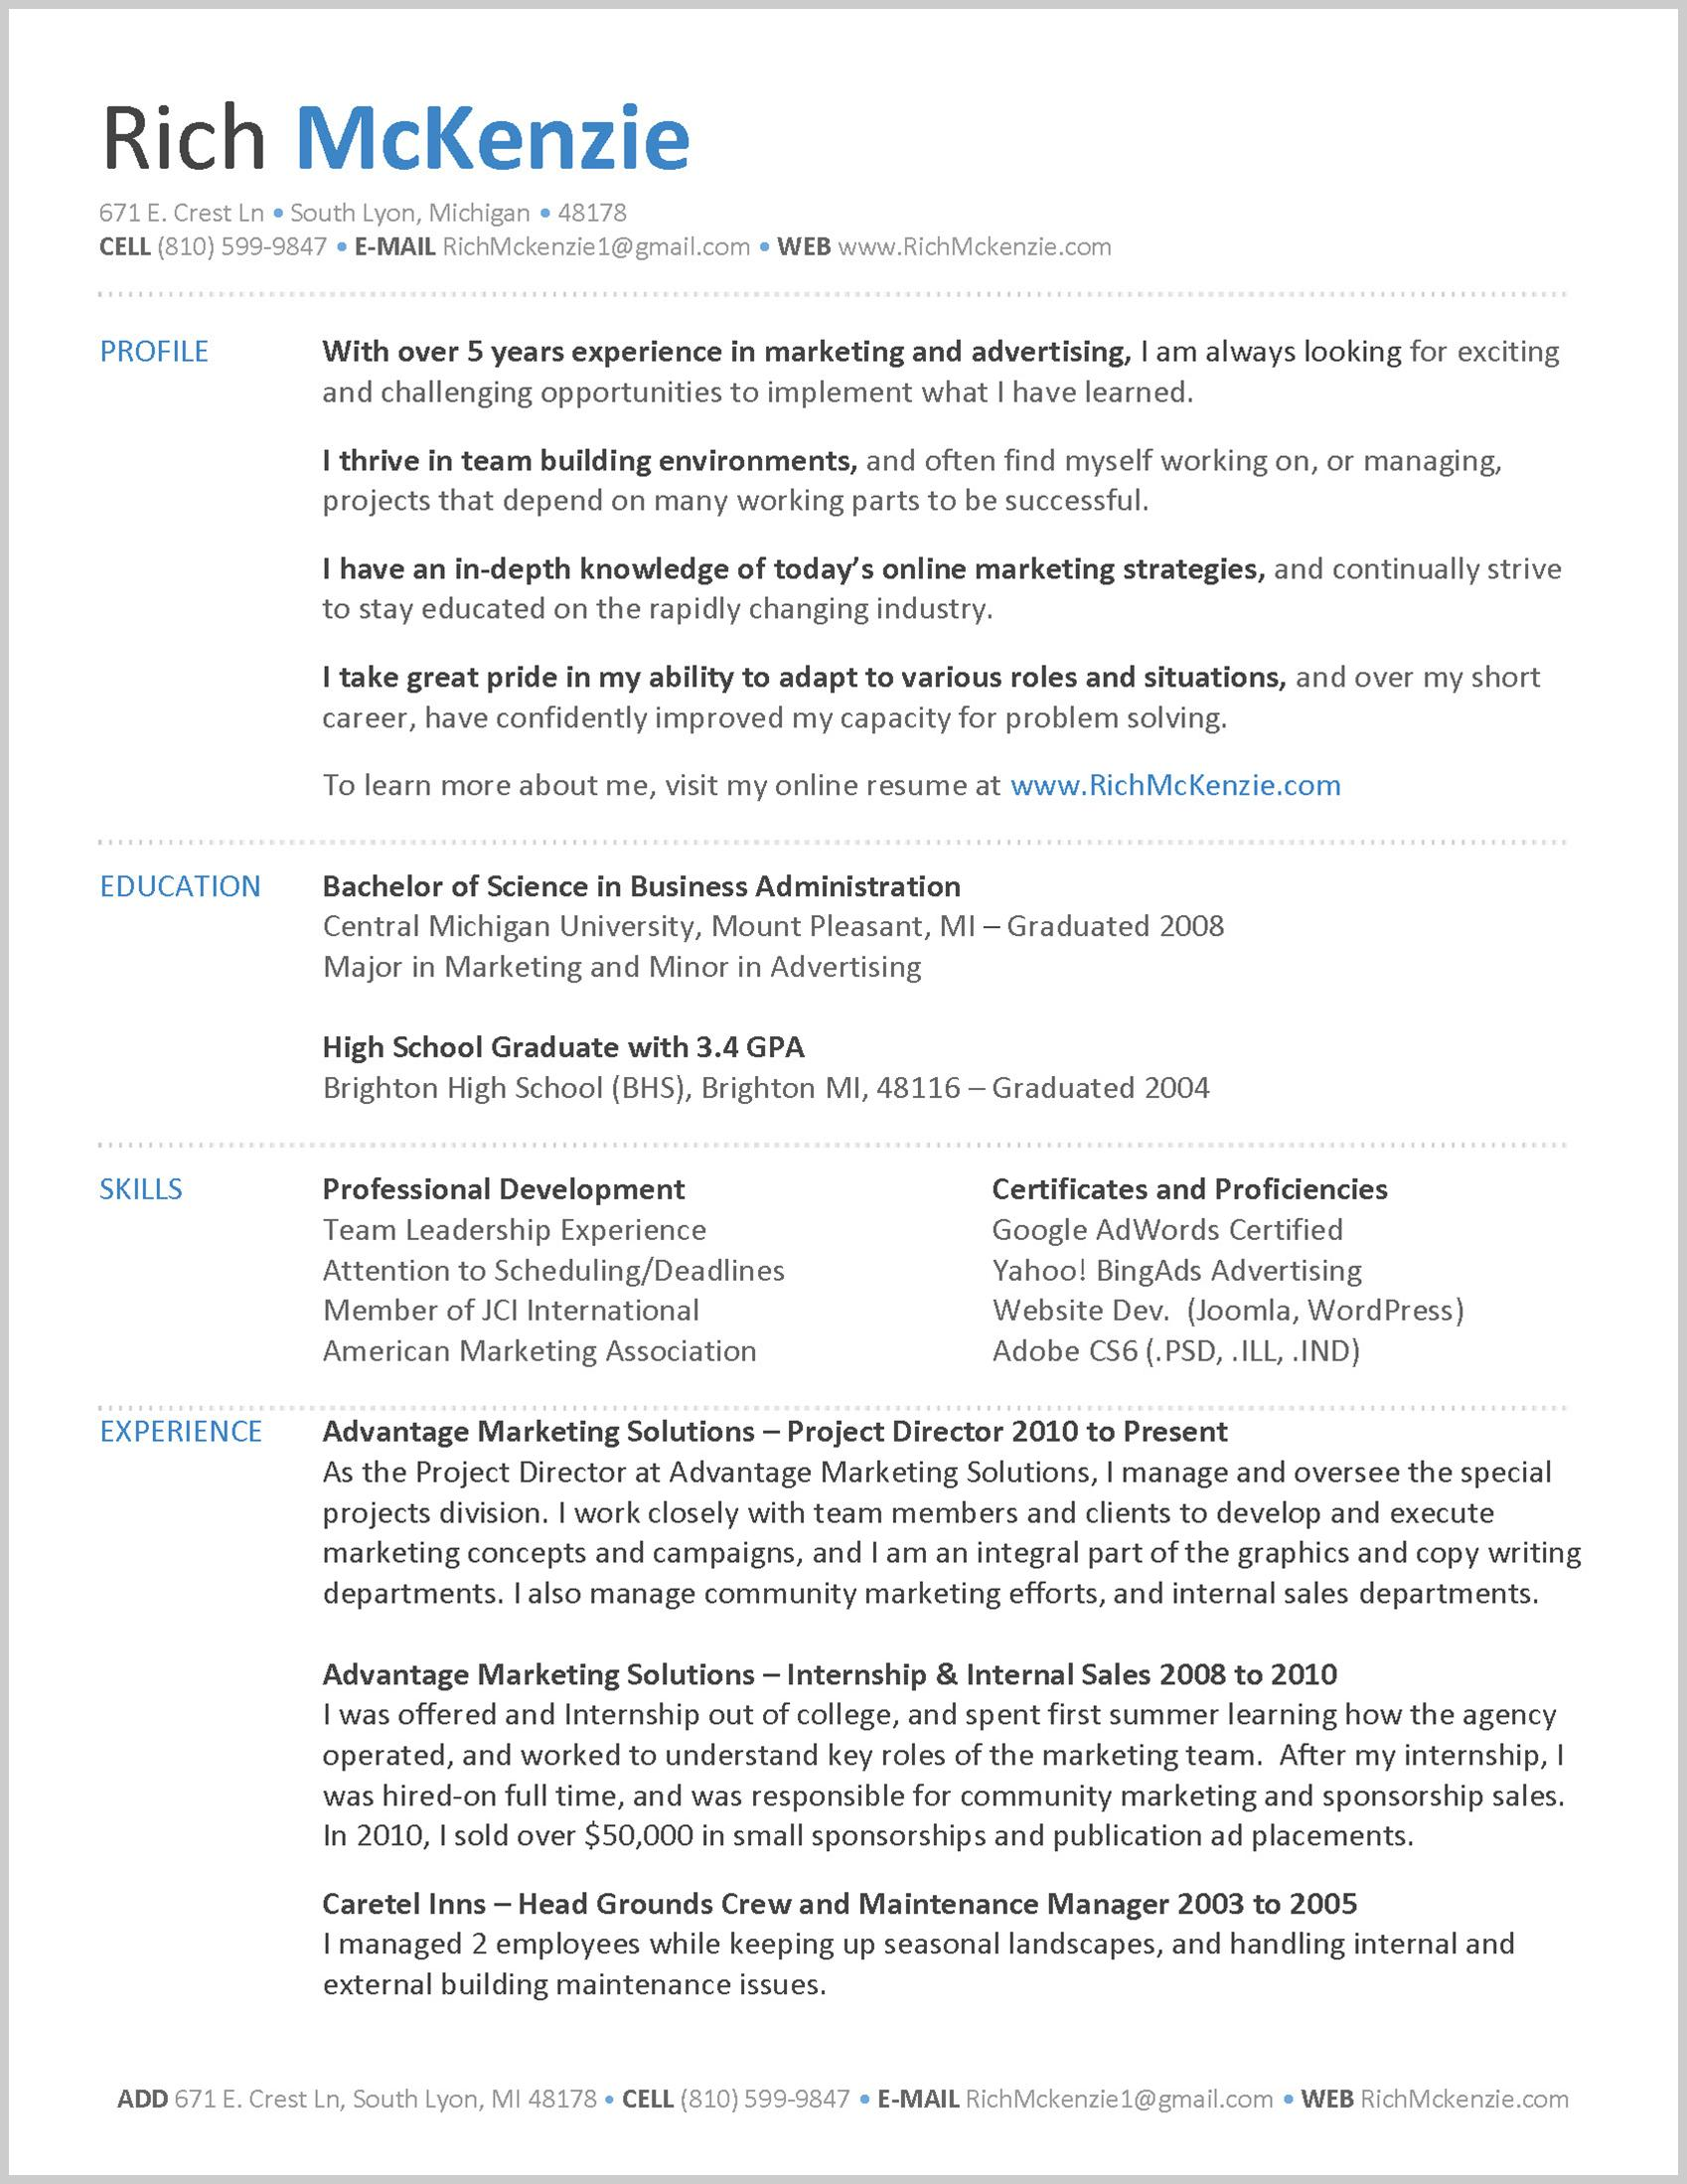 help my resume job cover letter help resume maker create professional resumes professional job cover letter - How Should A Professional Resume Look